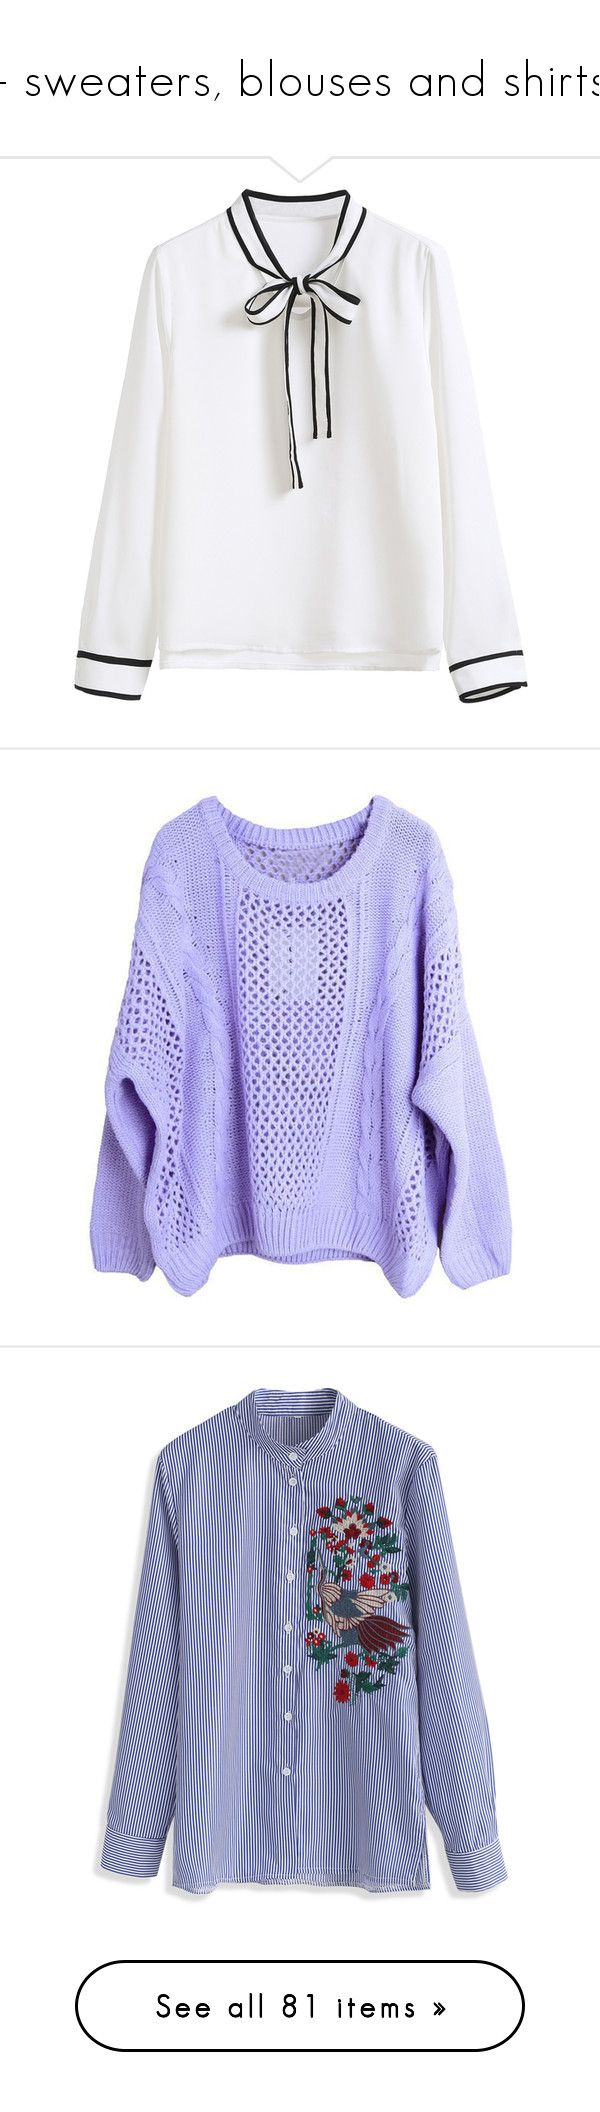 """""""- sweaters, blouses and shirts"""" by a-shaykhina ❤ liked on Polyvore featuring tops, blouses, clothing - ls tops, shirts, white, long sleeve shirts, long sleeve collar shirt, banded collar shirts, neck ties and long sleeve polyester shirt"""